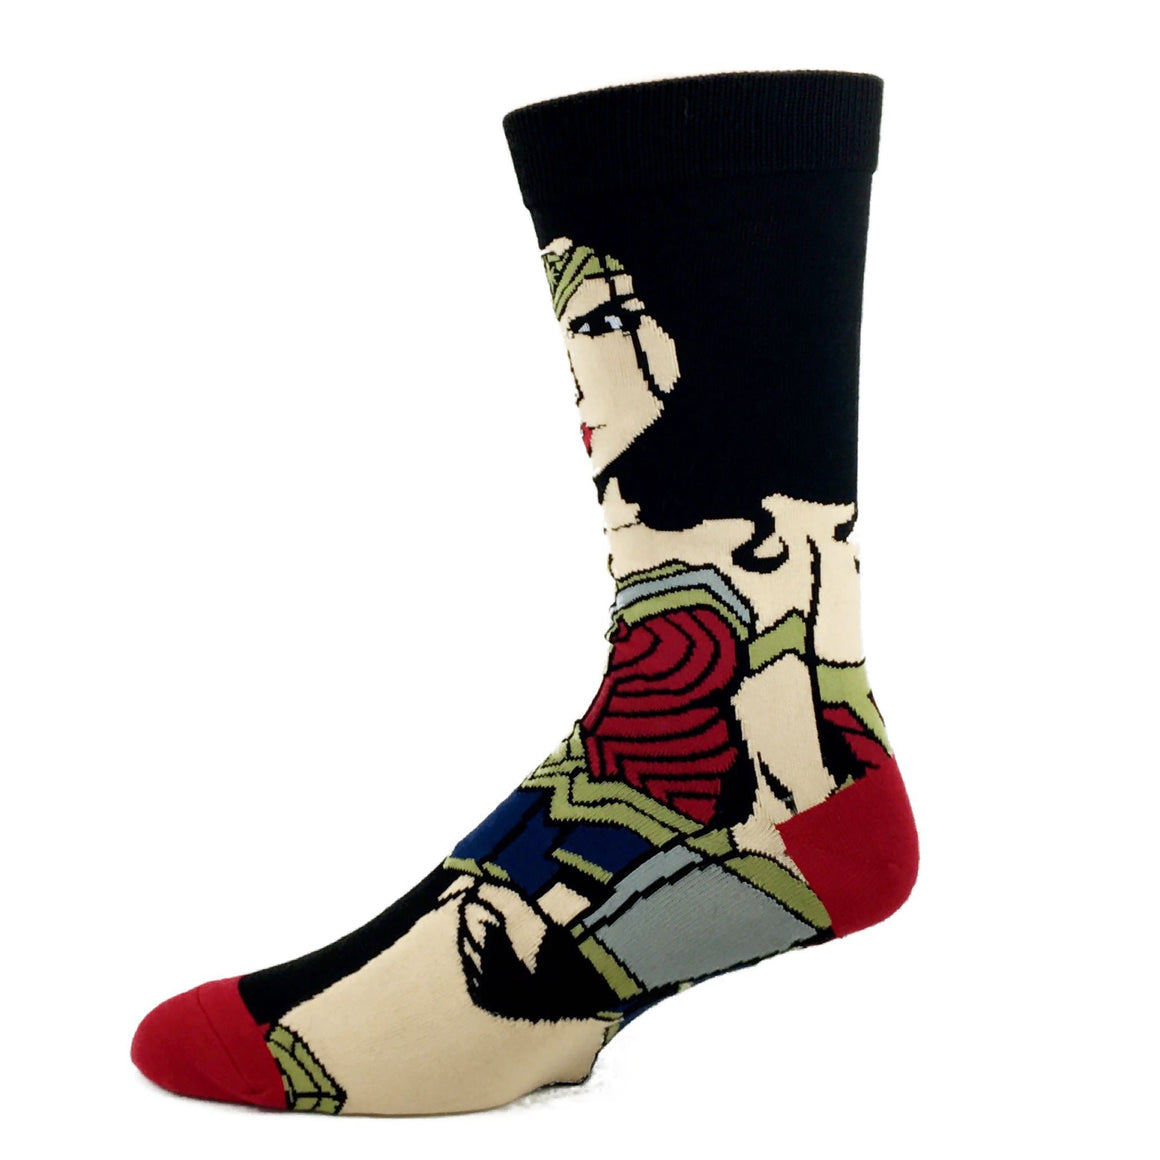 DC Comics Justice League Wonder Woman 360 Superhero Socks - The Sock Spot